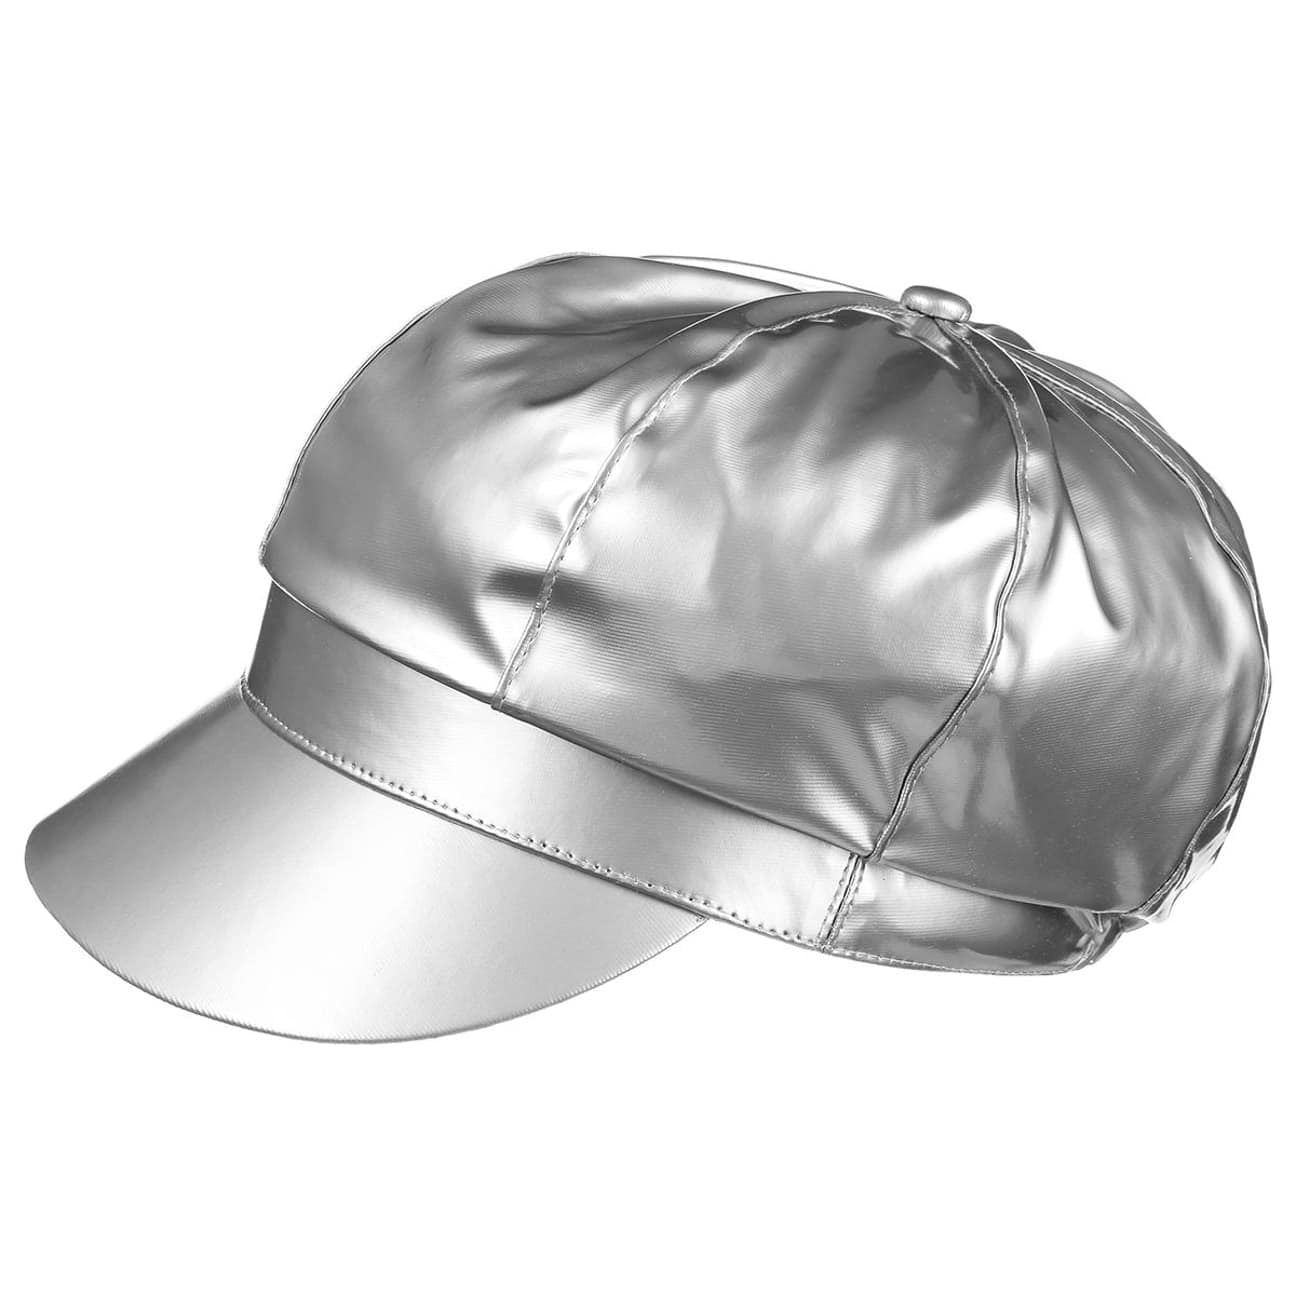 ... Patent Waterproof Hat by McBURN - silver 1 ... 45ebc16dca2c